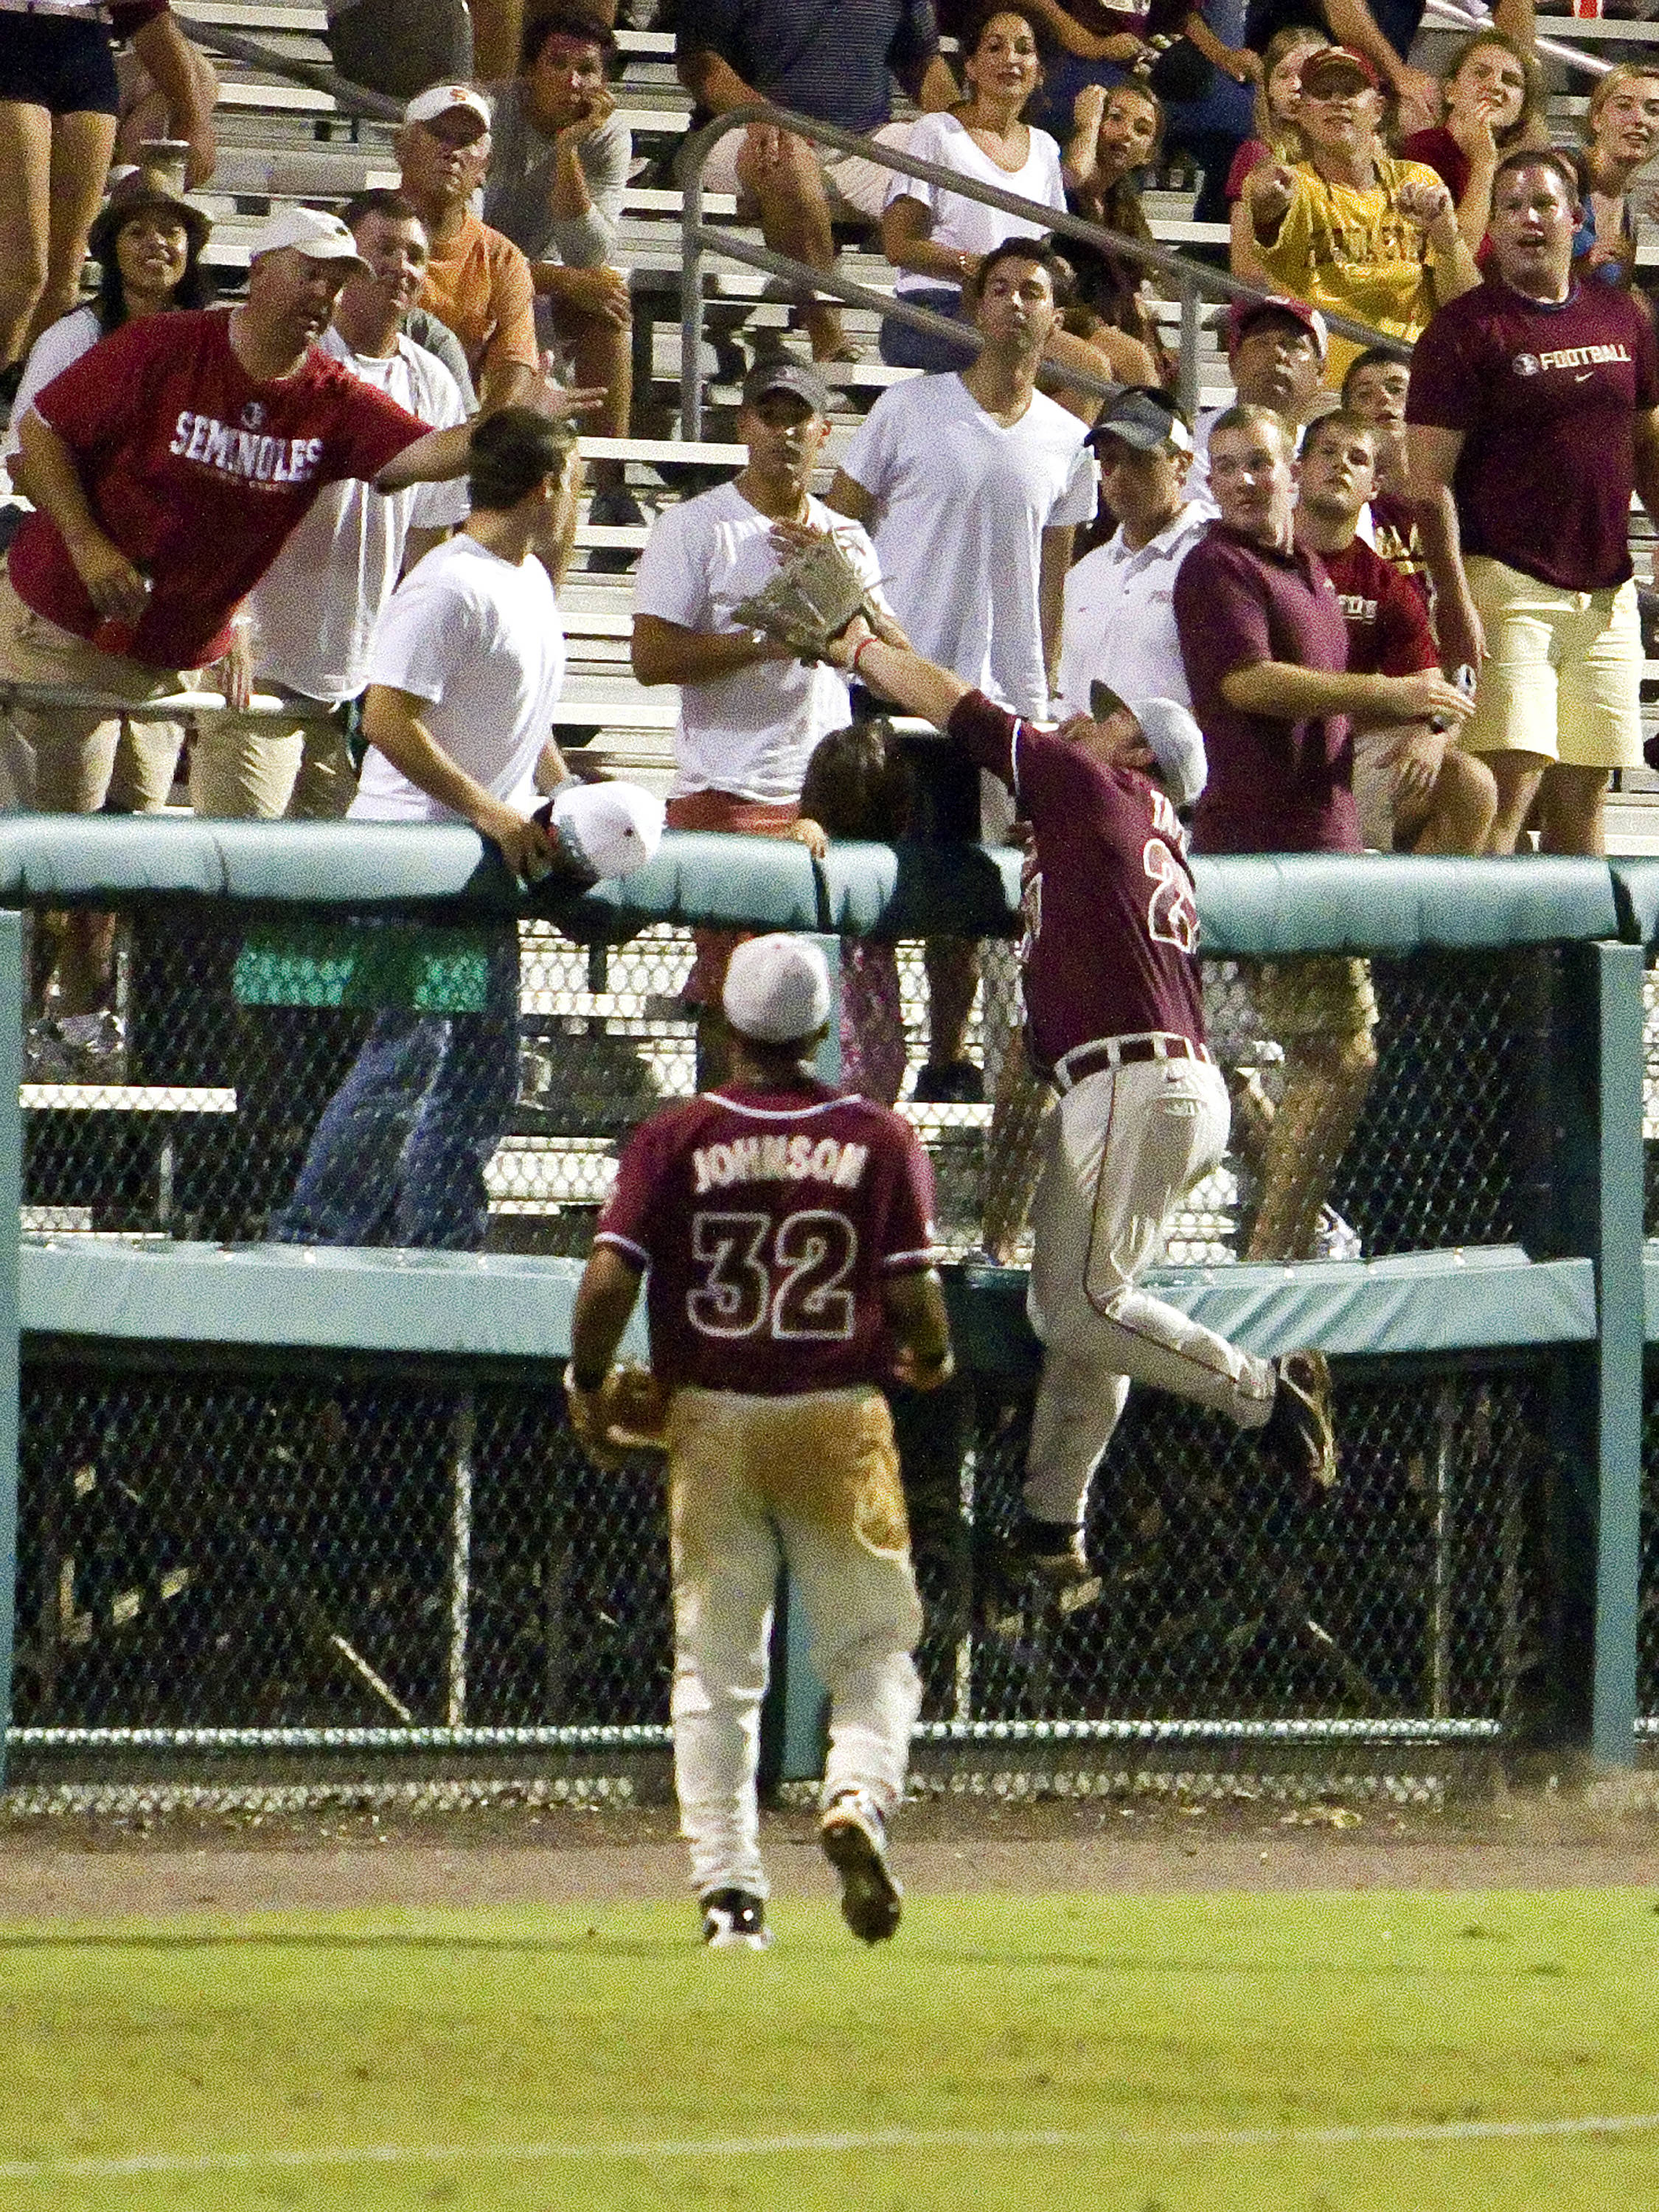 Outfielder Stuart Tapley (27) climbing the fence to attempt a catch